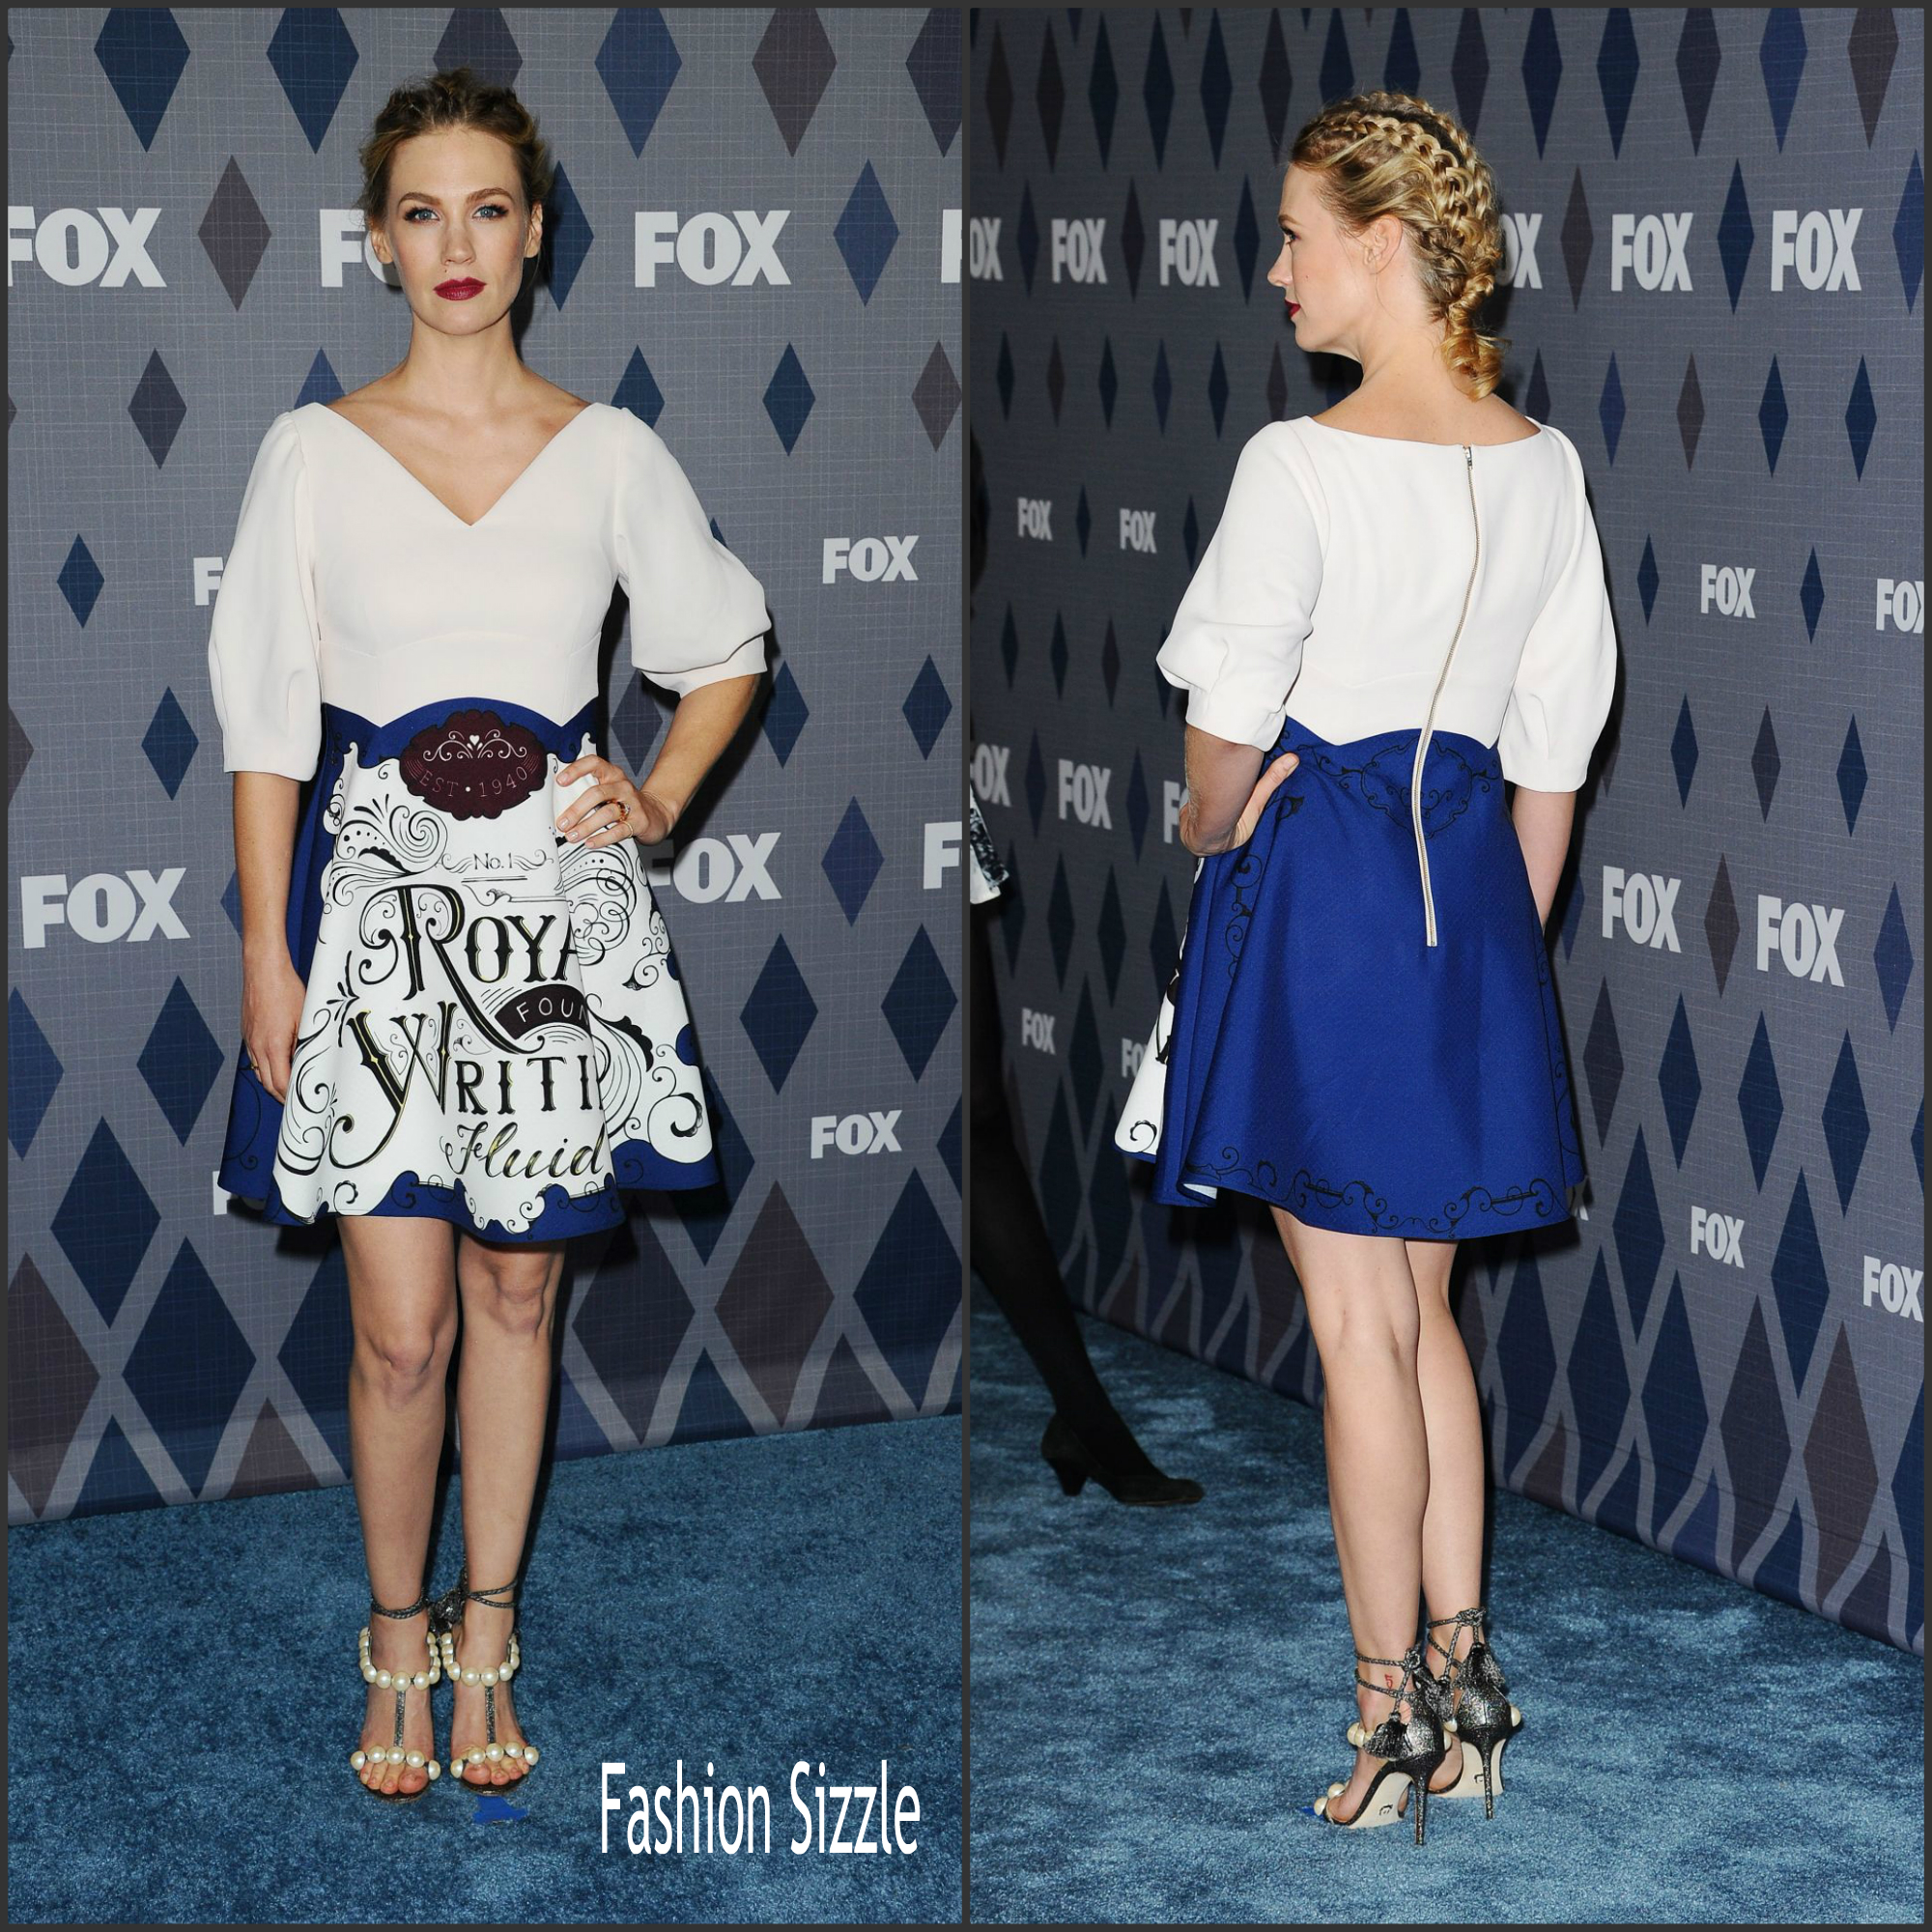 january-jones-in-disaya-fox-winter-tca-2016-all-star-party-in-pasadena-ca